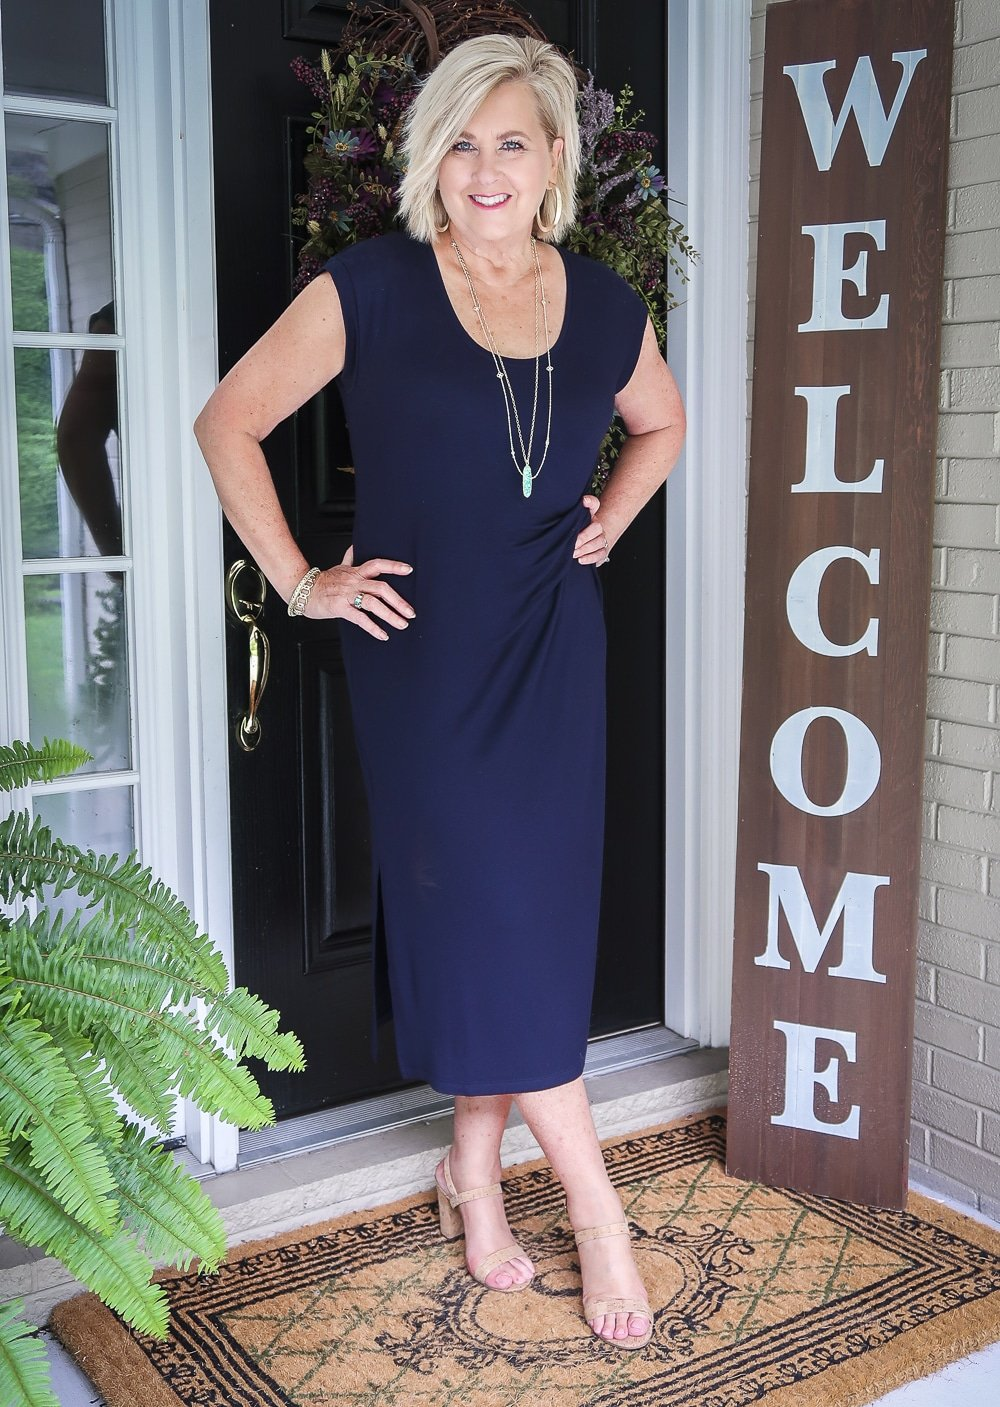 Fashion Blogger 50 Is Not Old is wearing a navy scoop neck midi dress with gold jewelry and cork heels